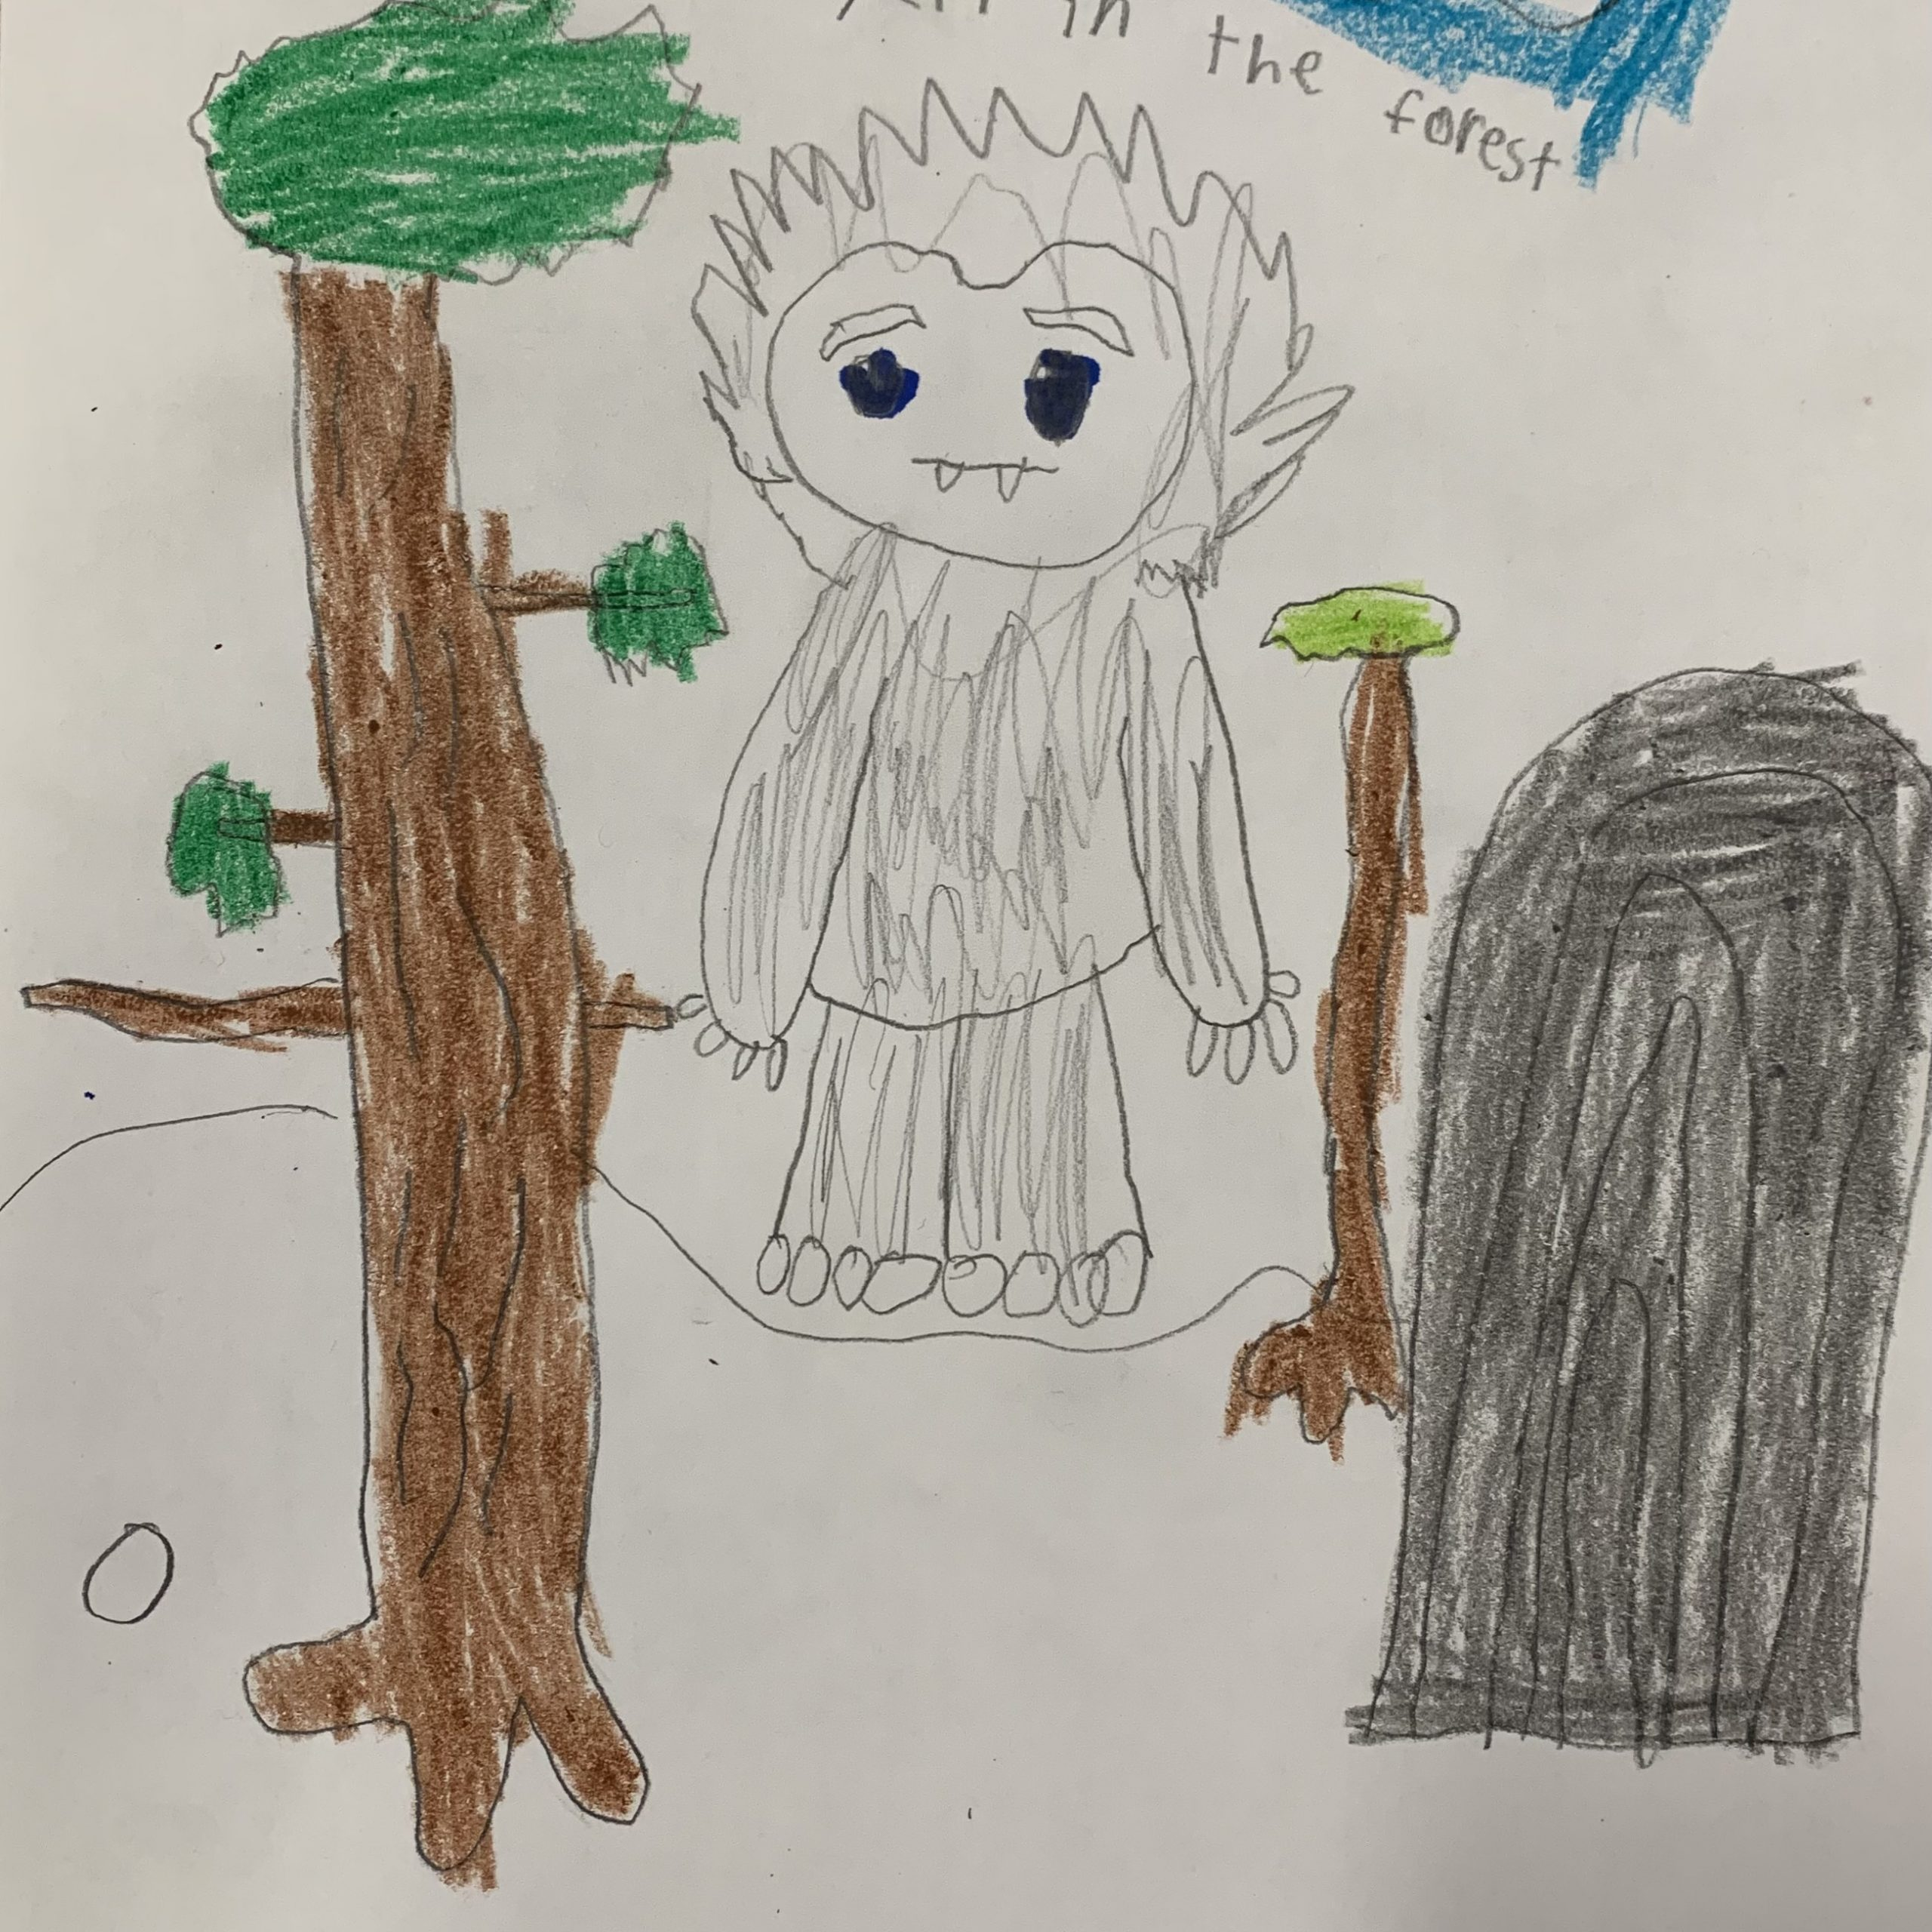 yeti in the forest evan b